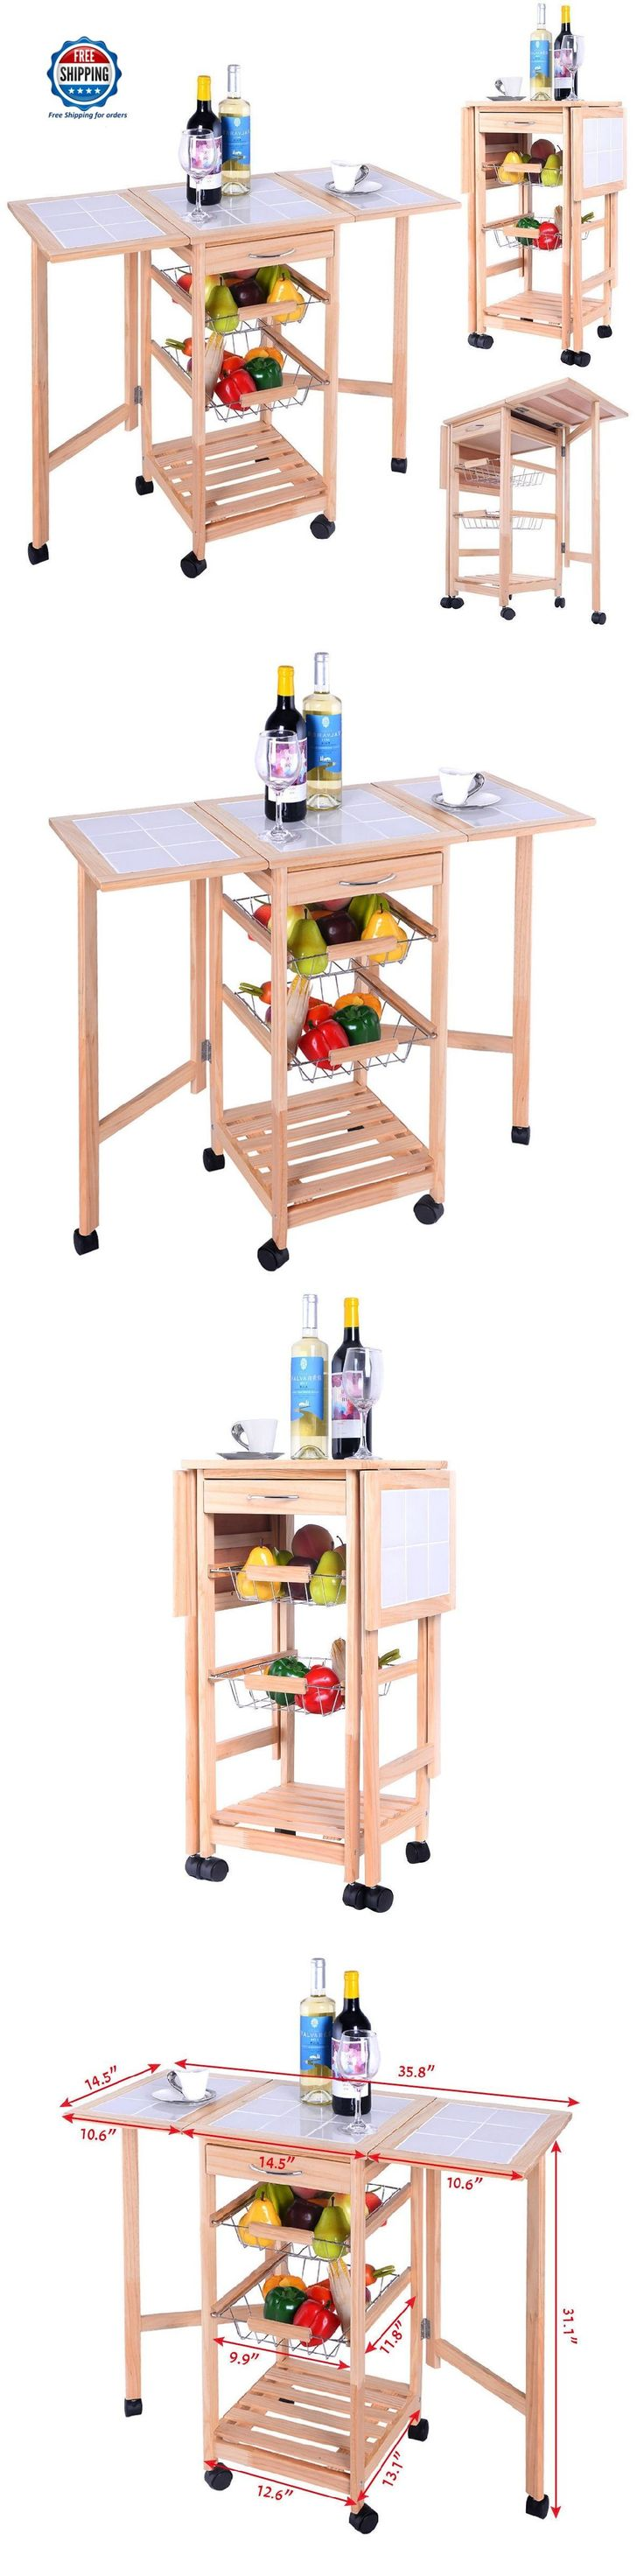 bar carts and serving carts 183320 kitchen dining serving cart rolling storage utility portable island - Dining Room Serving Carts